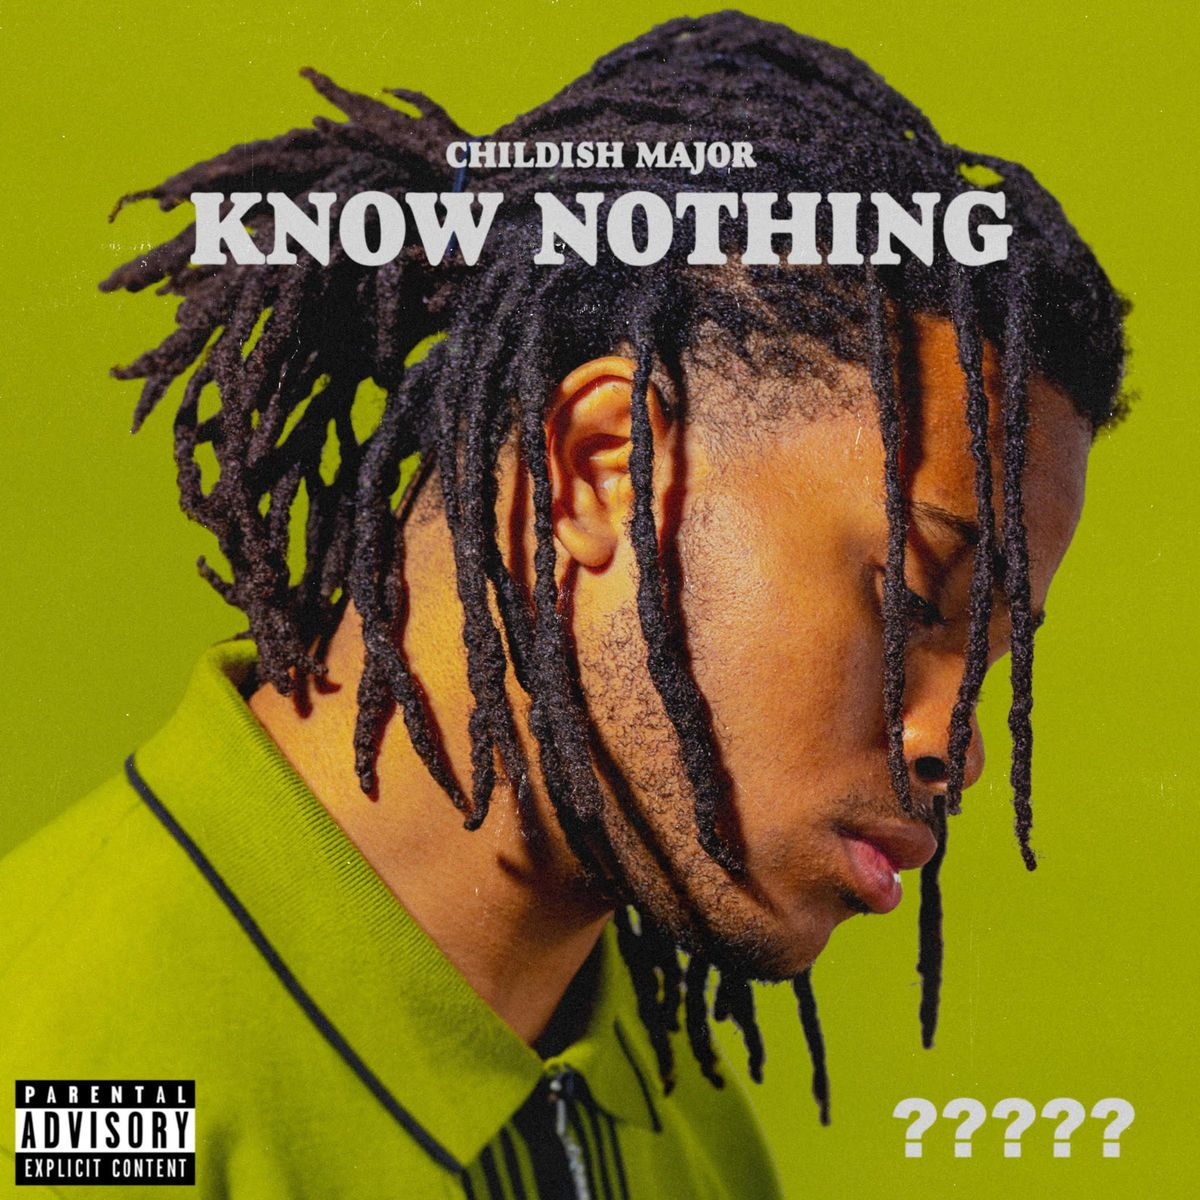 Listen to @Childish_Major's New Single 'Know Nothing' https://t.co/A2K38fRwl7 https://t.co/LcCjL5Ww9S